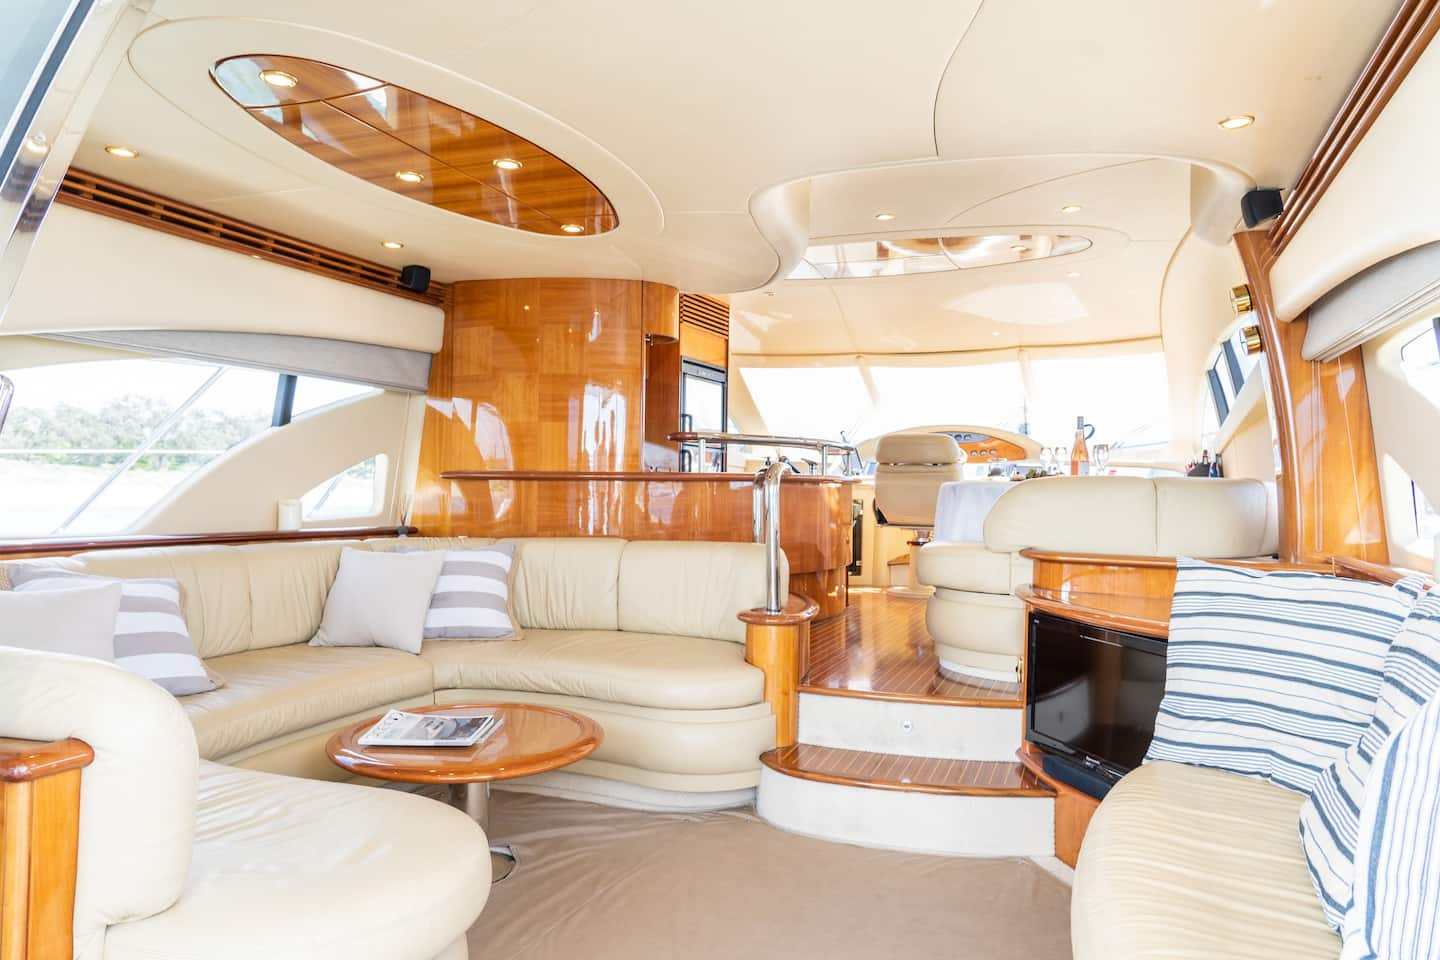 interior of a luxe boat